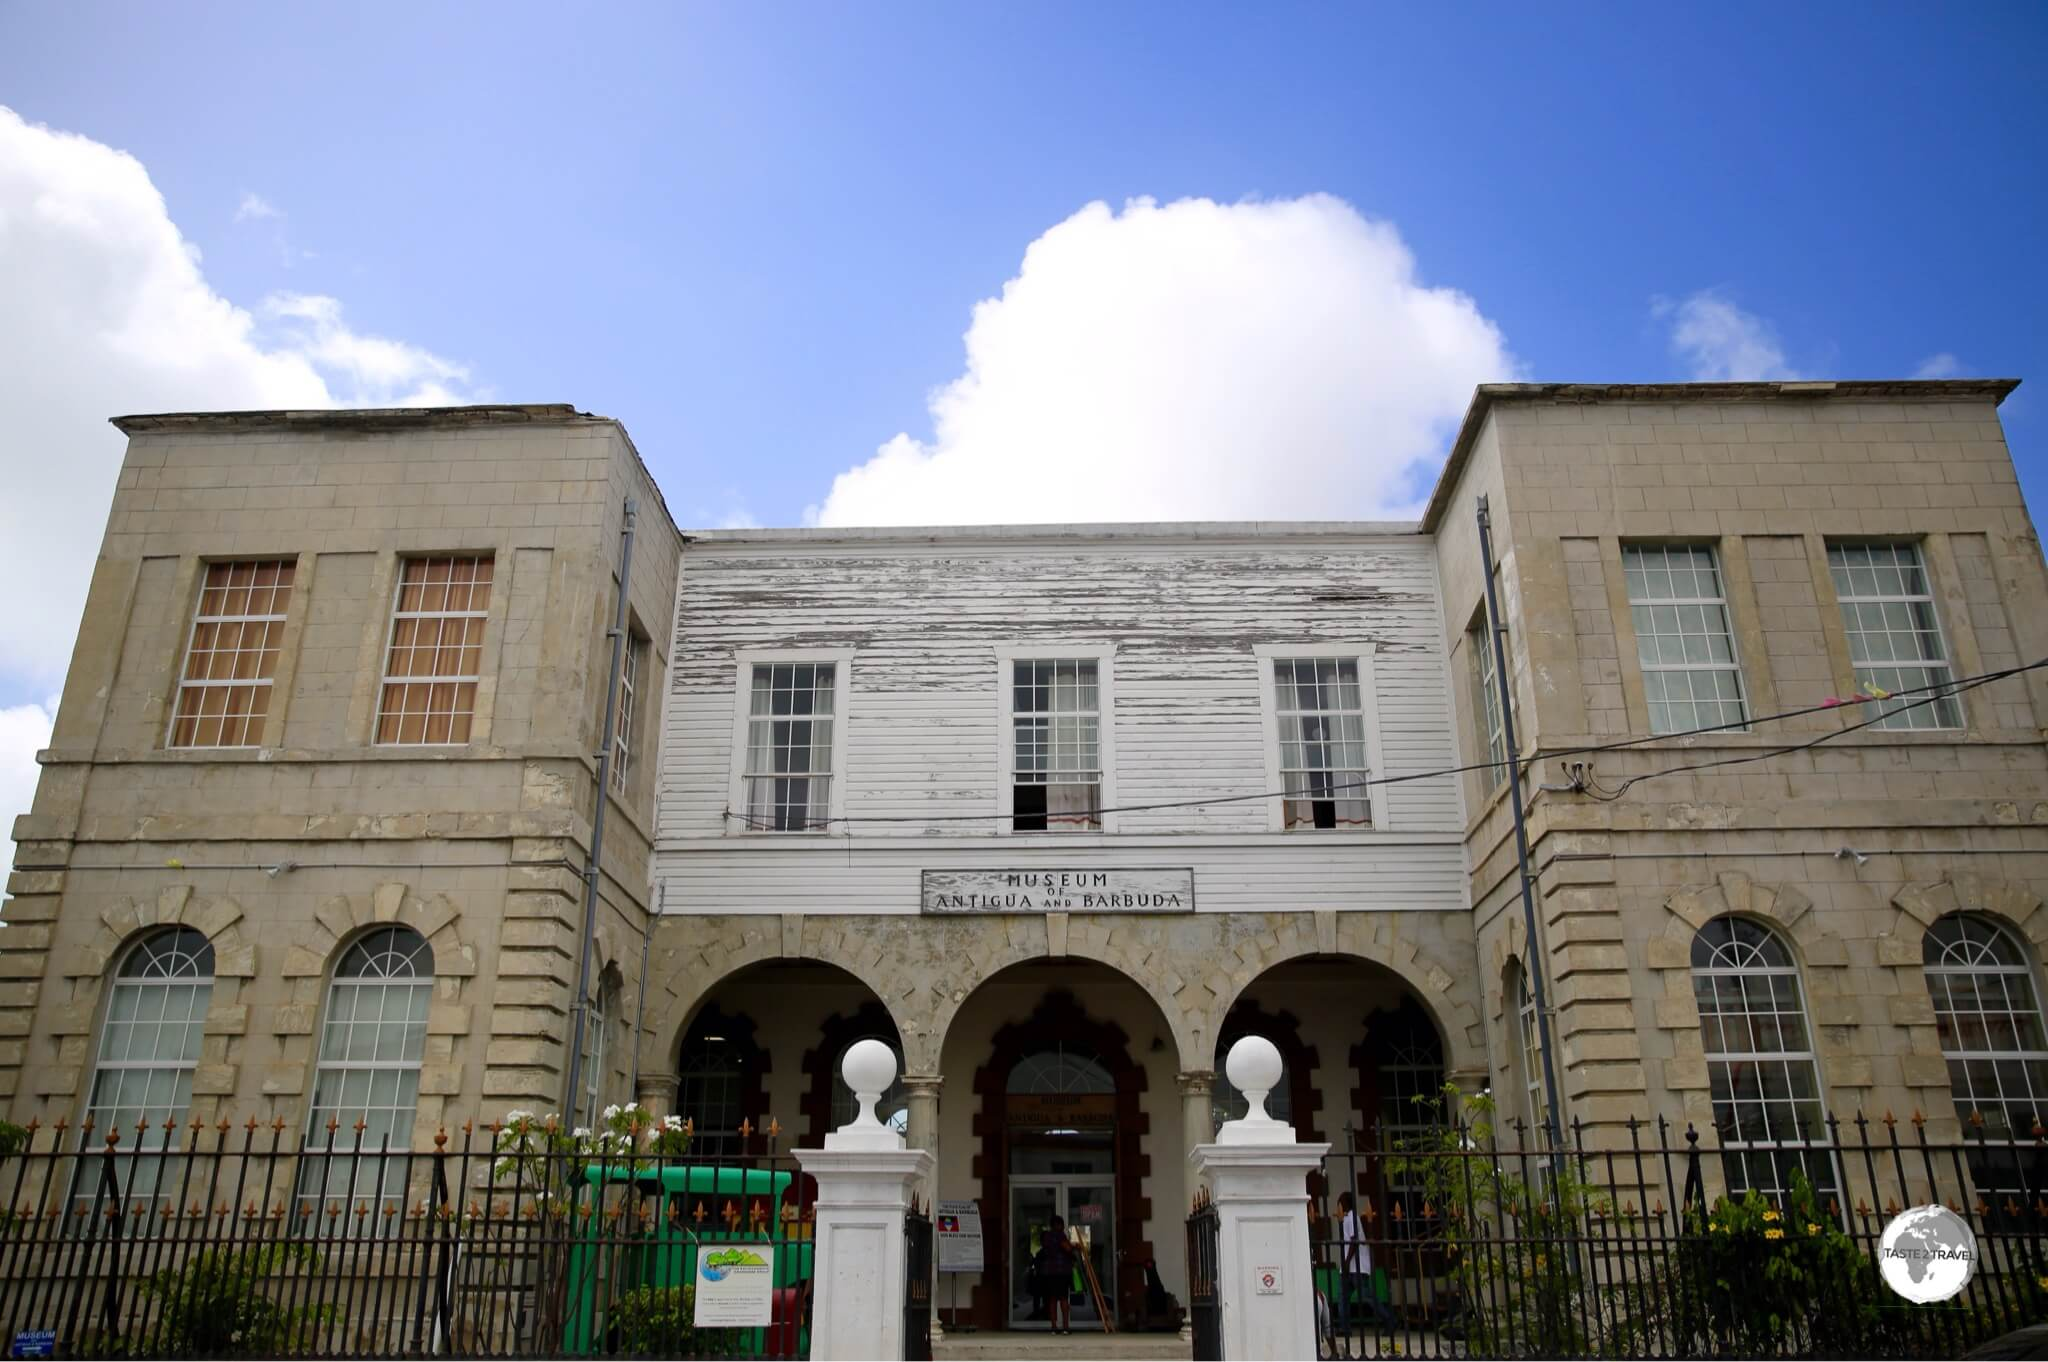 The Museum of Antigua & Barbuda in St. Johns.